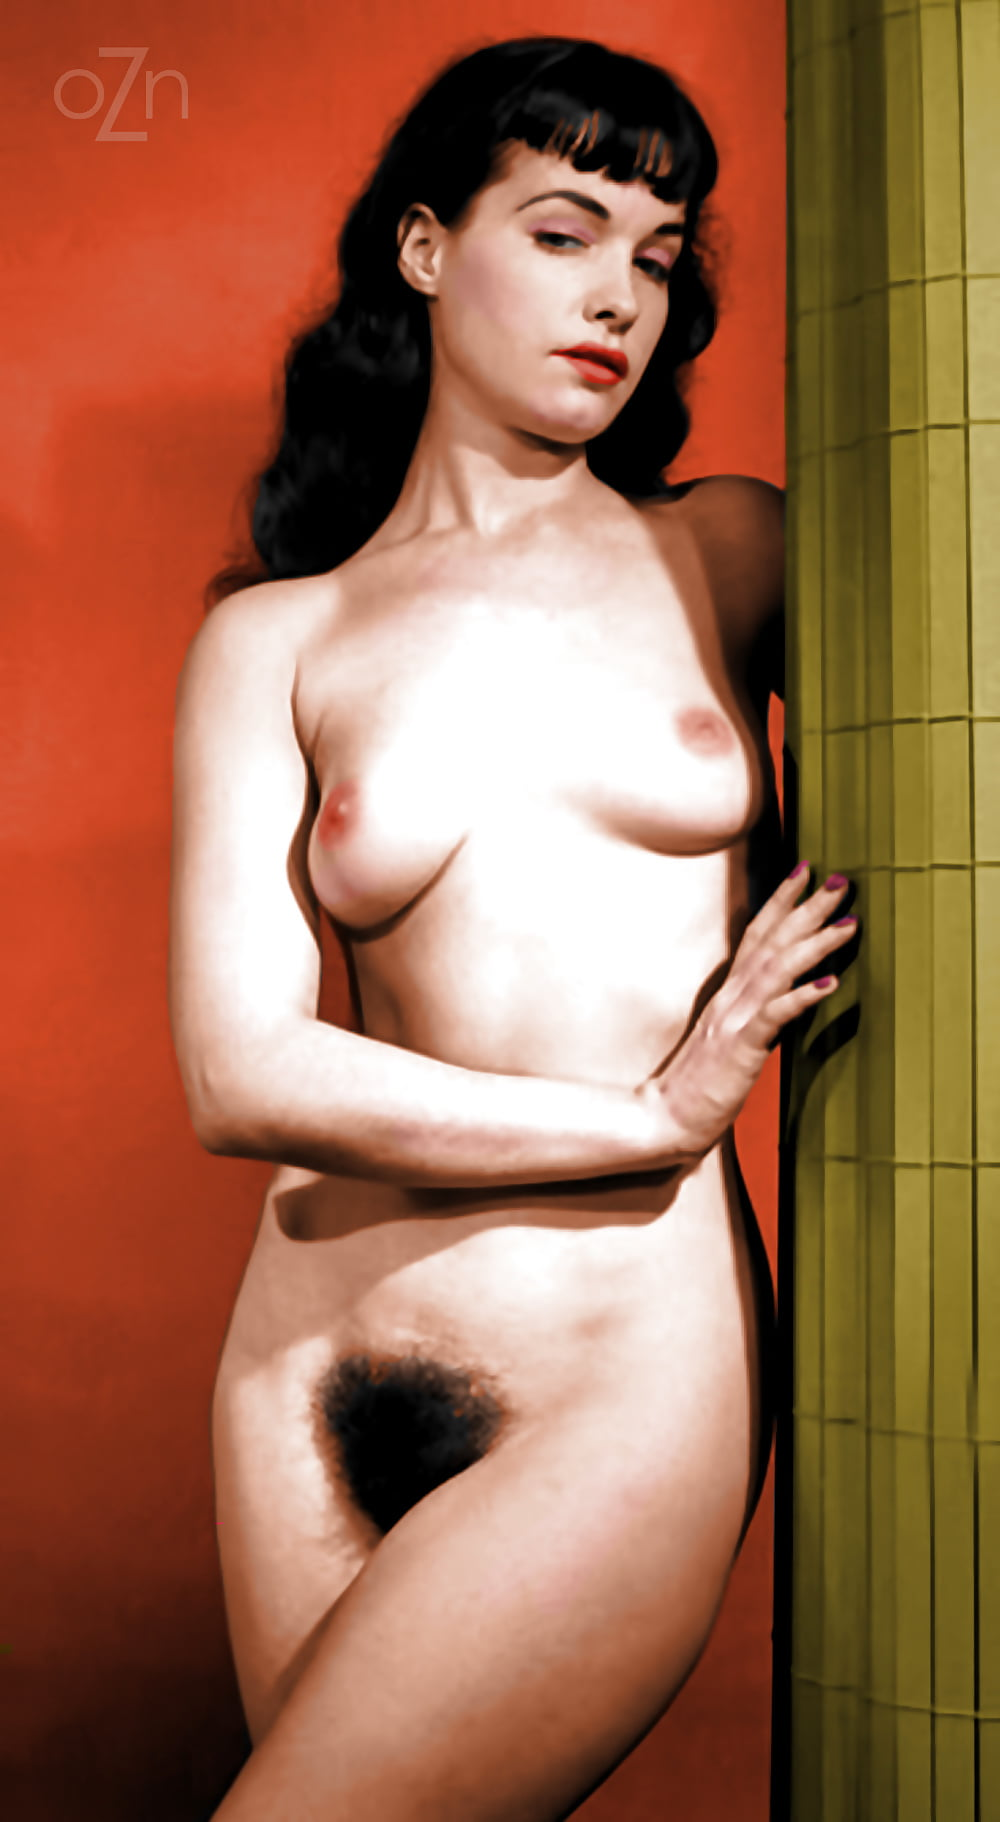 Fucking betty page nude photo butt naked